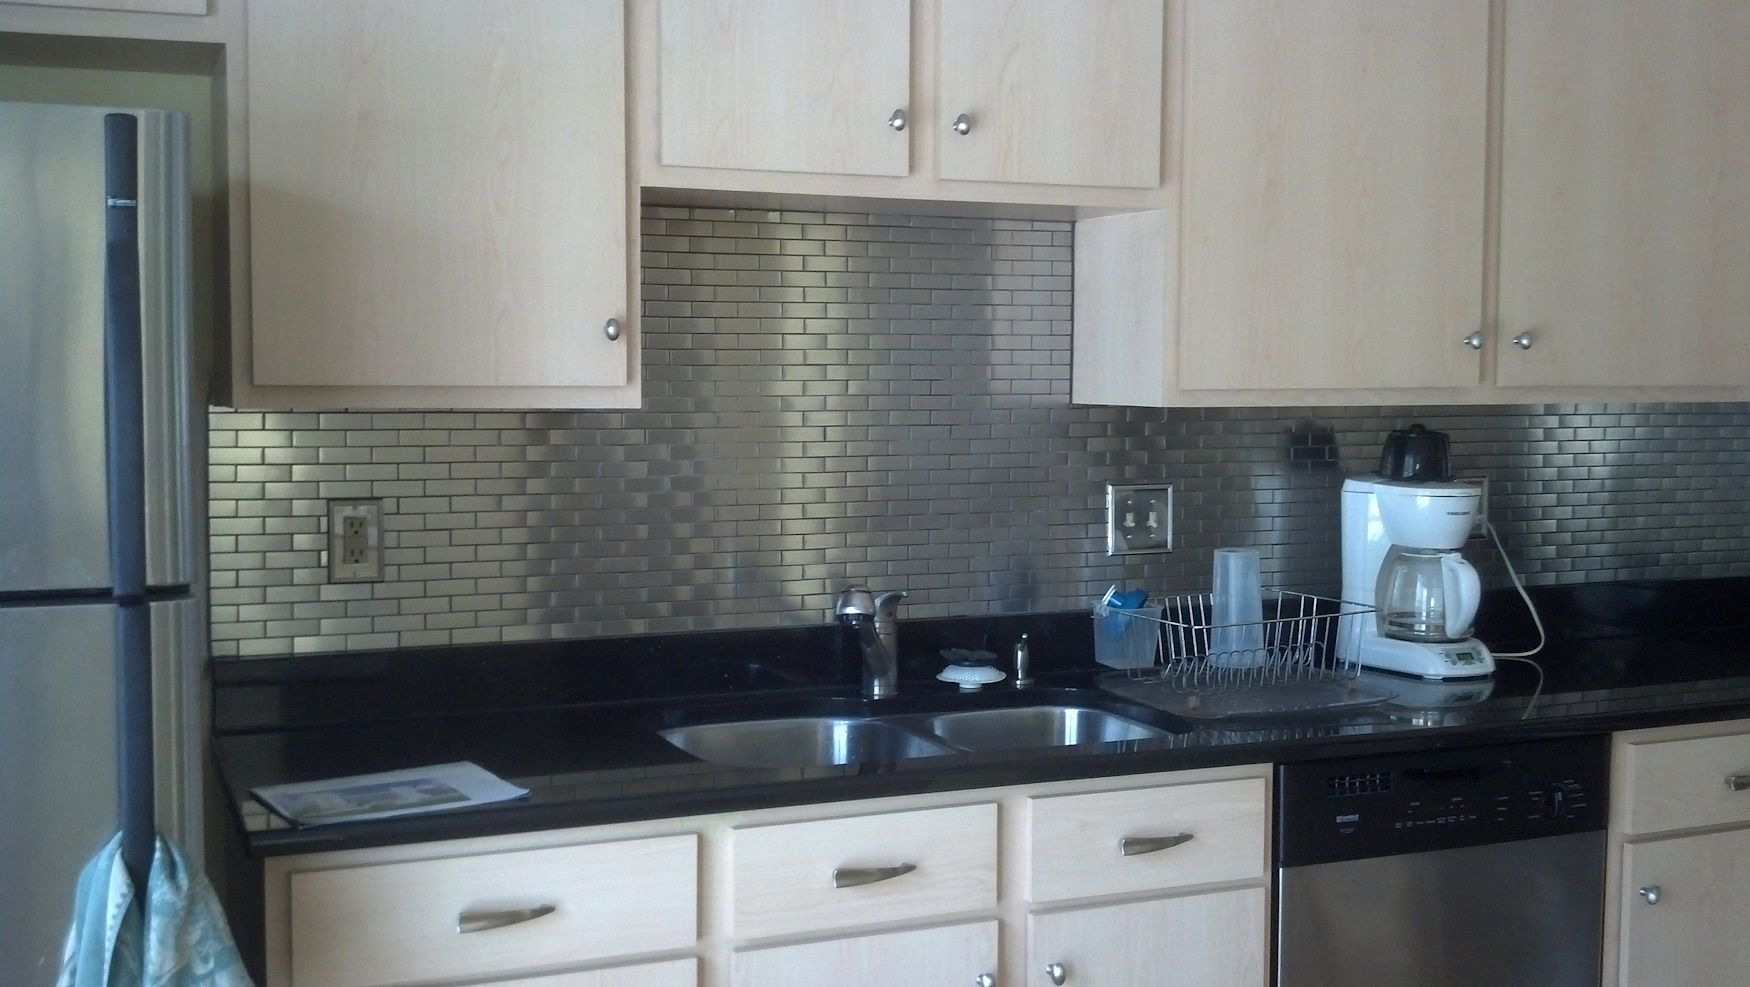 Home Depot Kitchen Backsplash Subway Tiles Collection Full Size Of